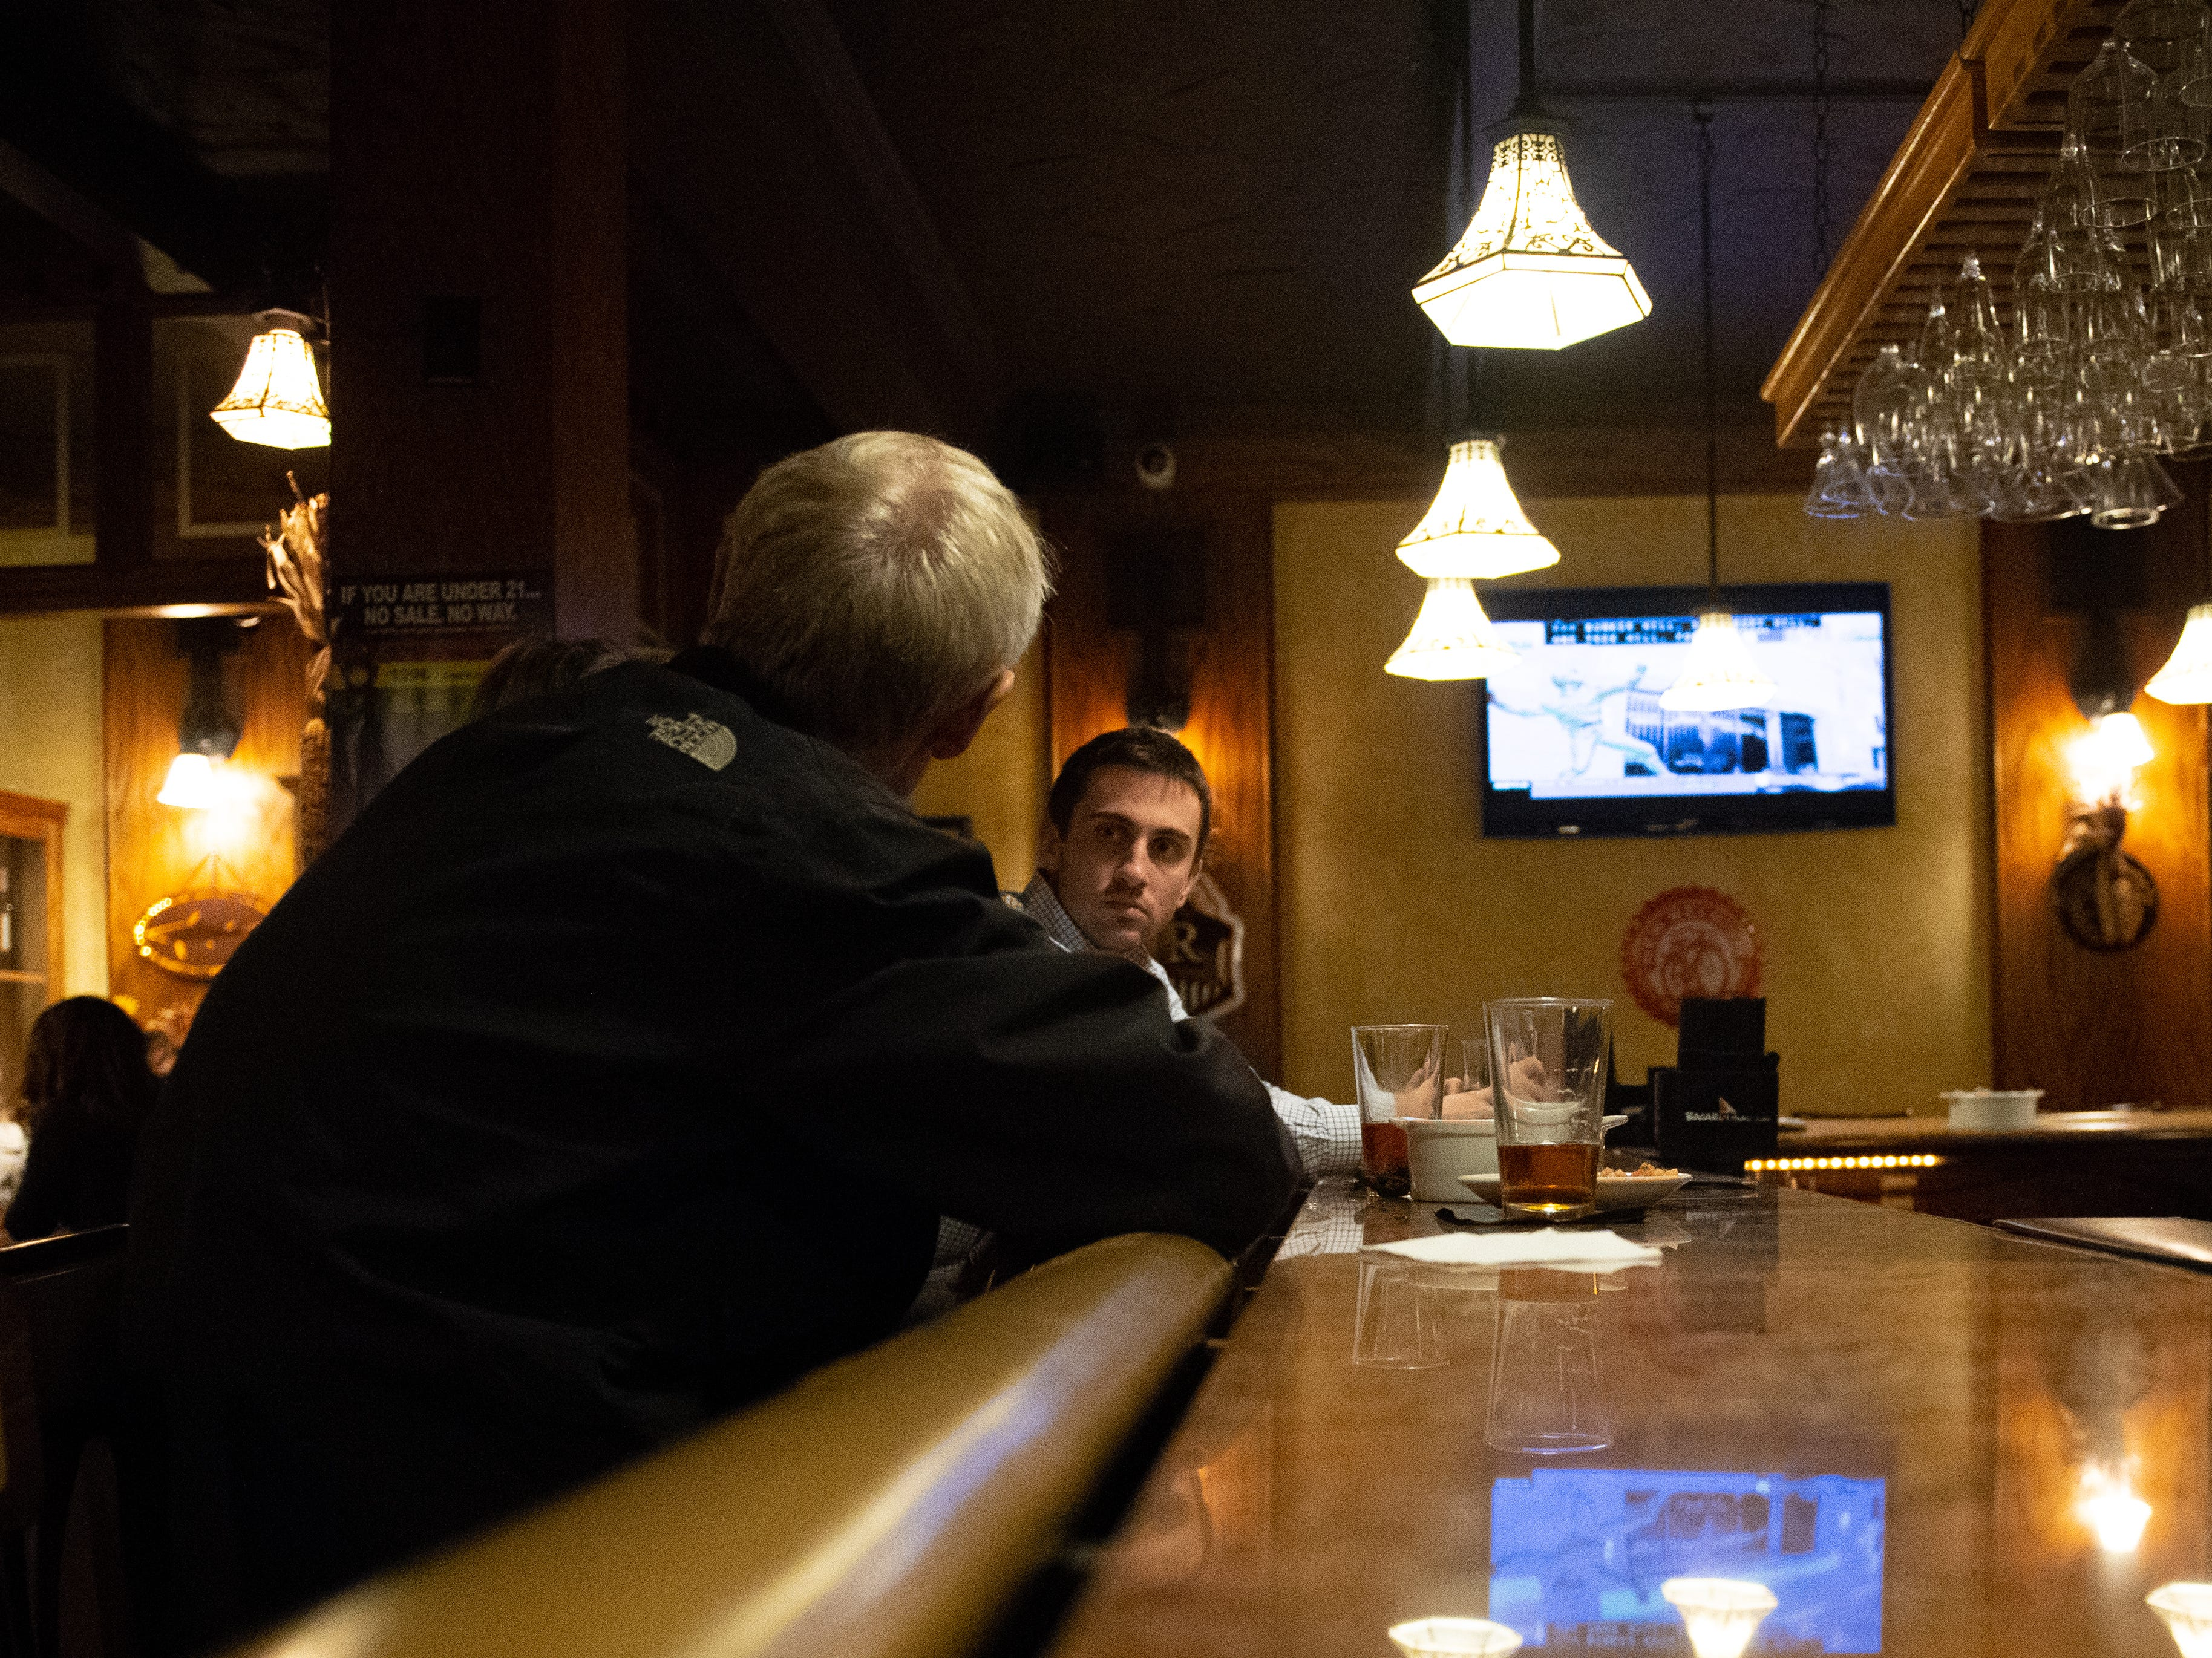 There's plenty of room at the bar during happy hour at Roosevelt Tavern in downtown York.